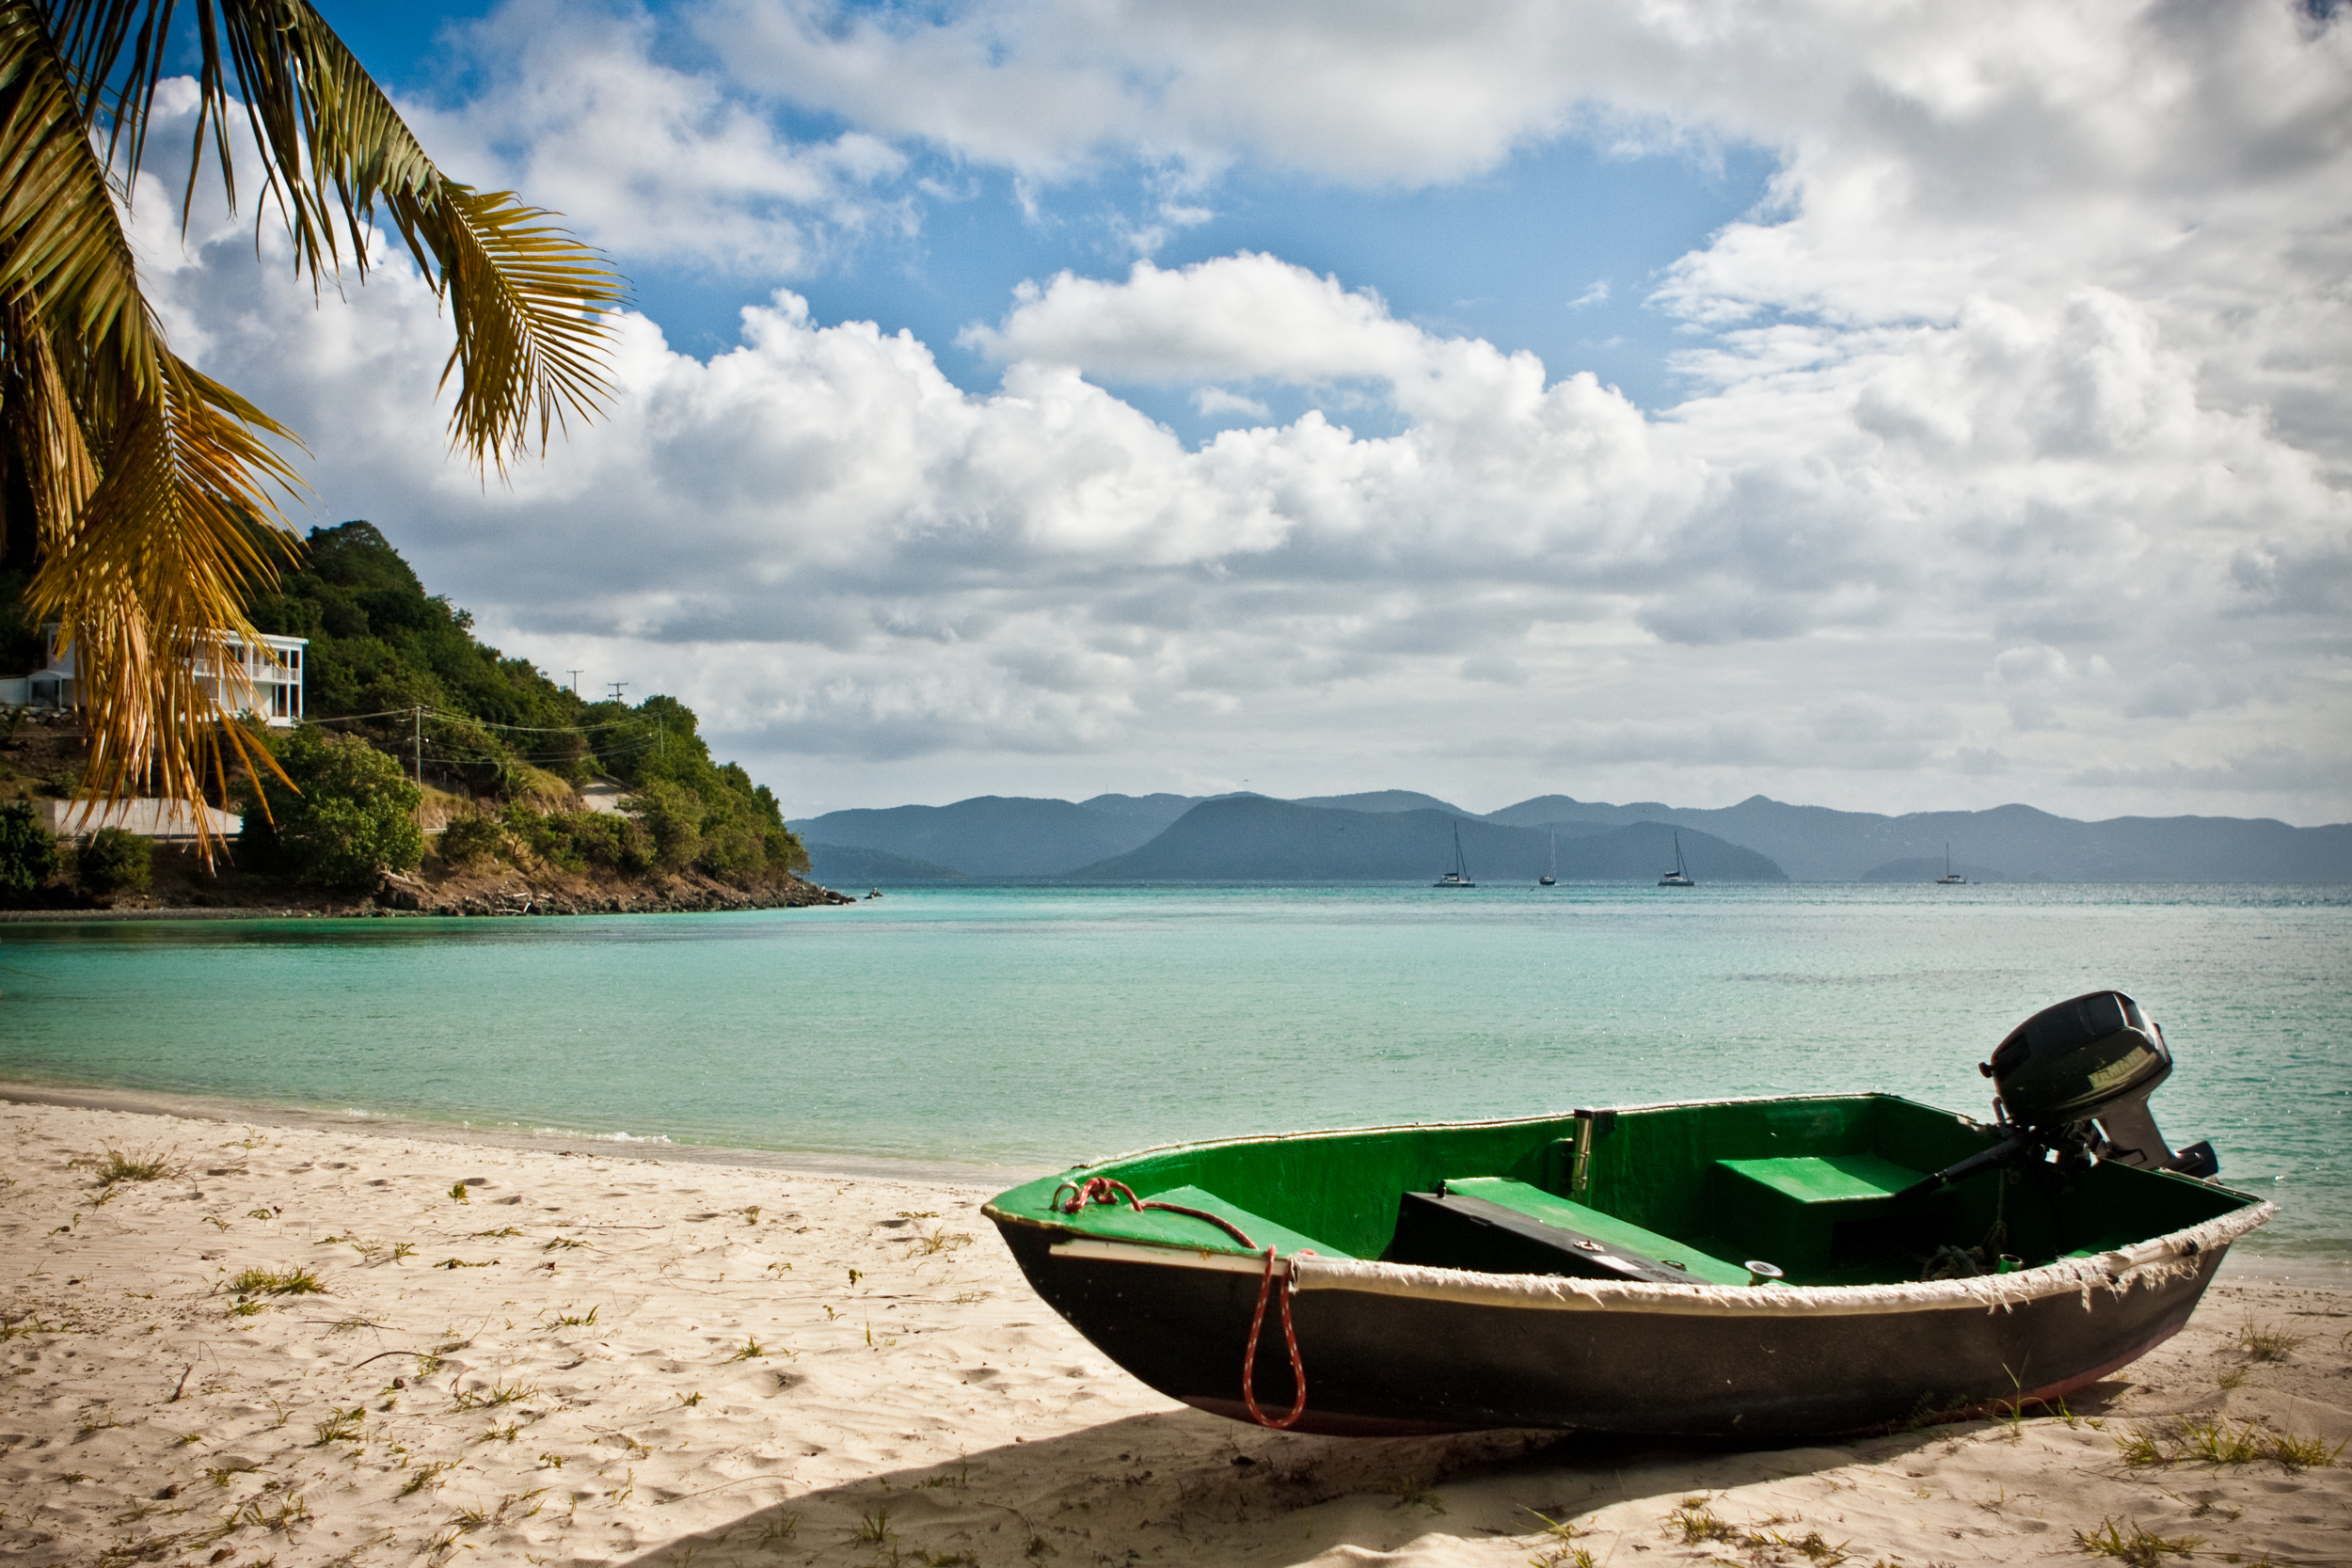 Green dinghy rests on the beach with palm trees, clear water and anchored sailboats in the background.